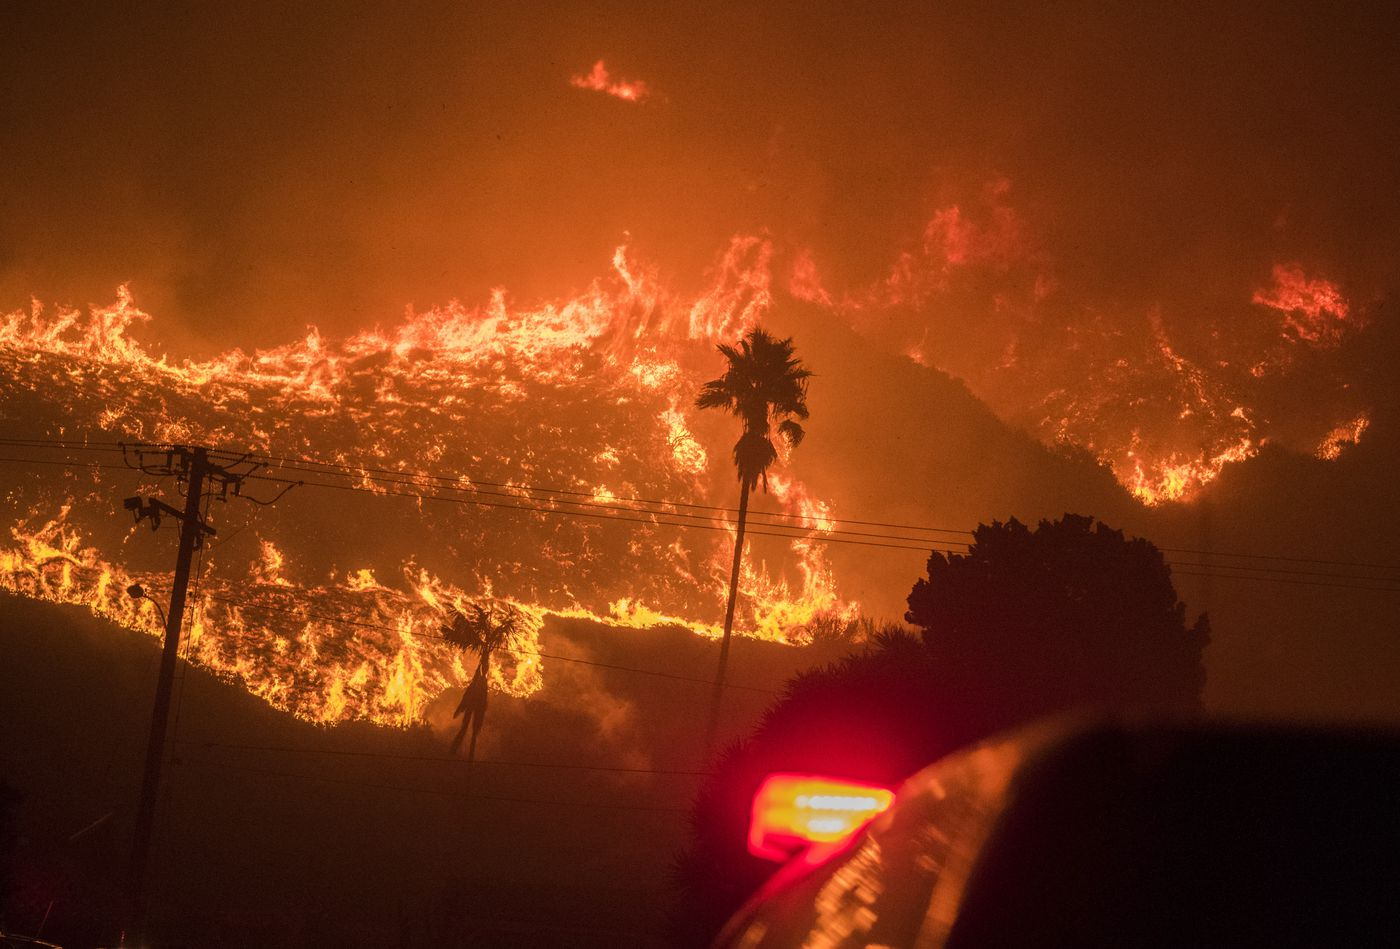 The Thomas Fire in December 2017 was the first sign that Santa Barbara's climate had changed and that wildfires had become more severe. It burned 281,000 acres and heavy rains a month later killed 23 people. Photo for The Washington Post by Stuart Palley